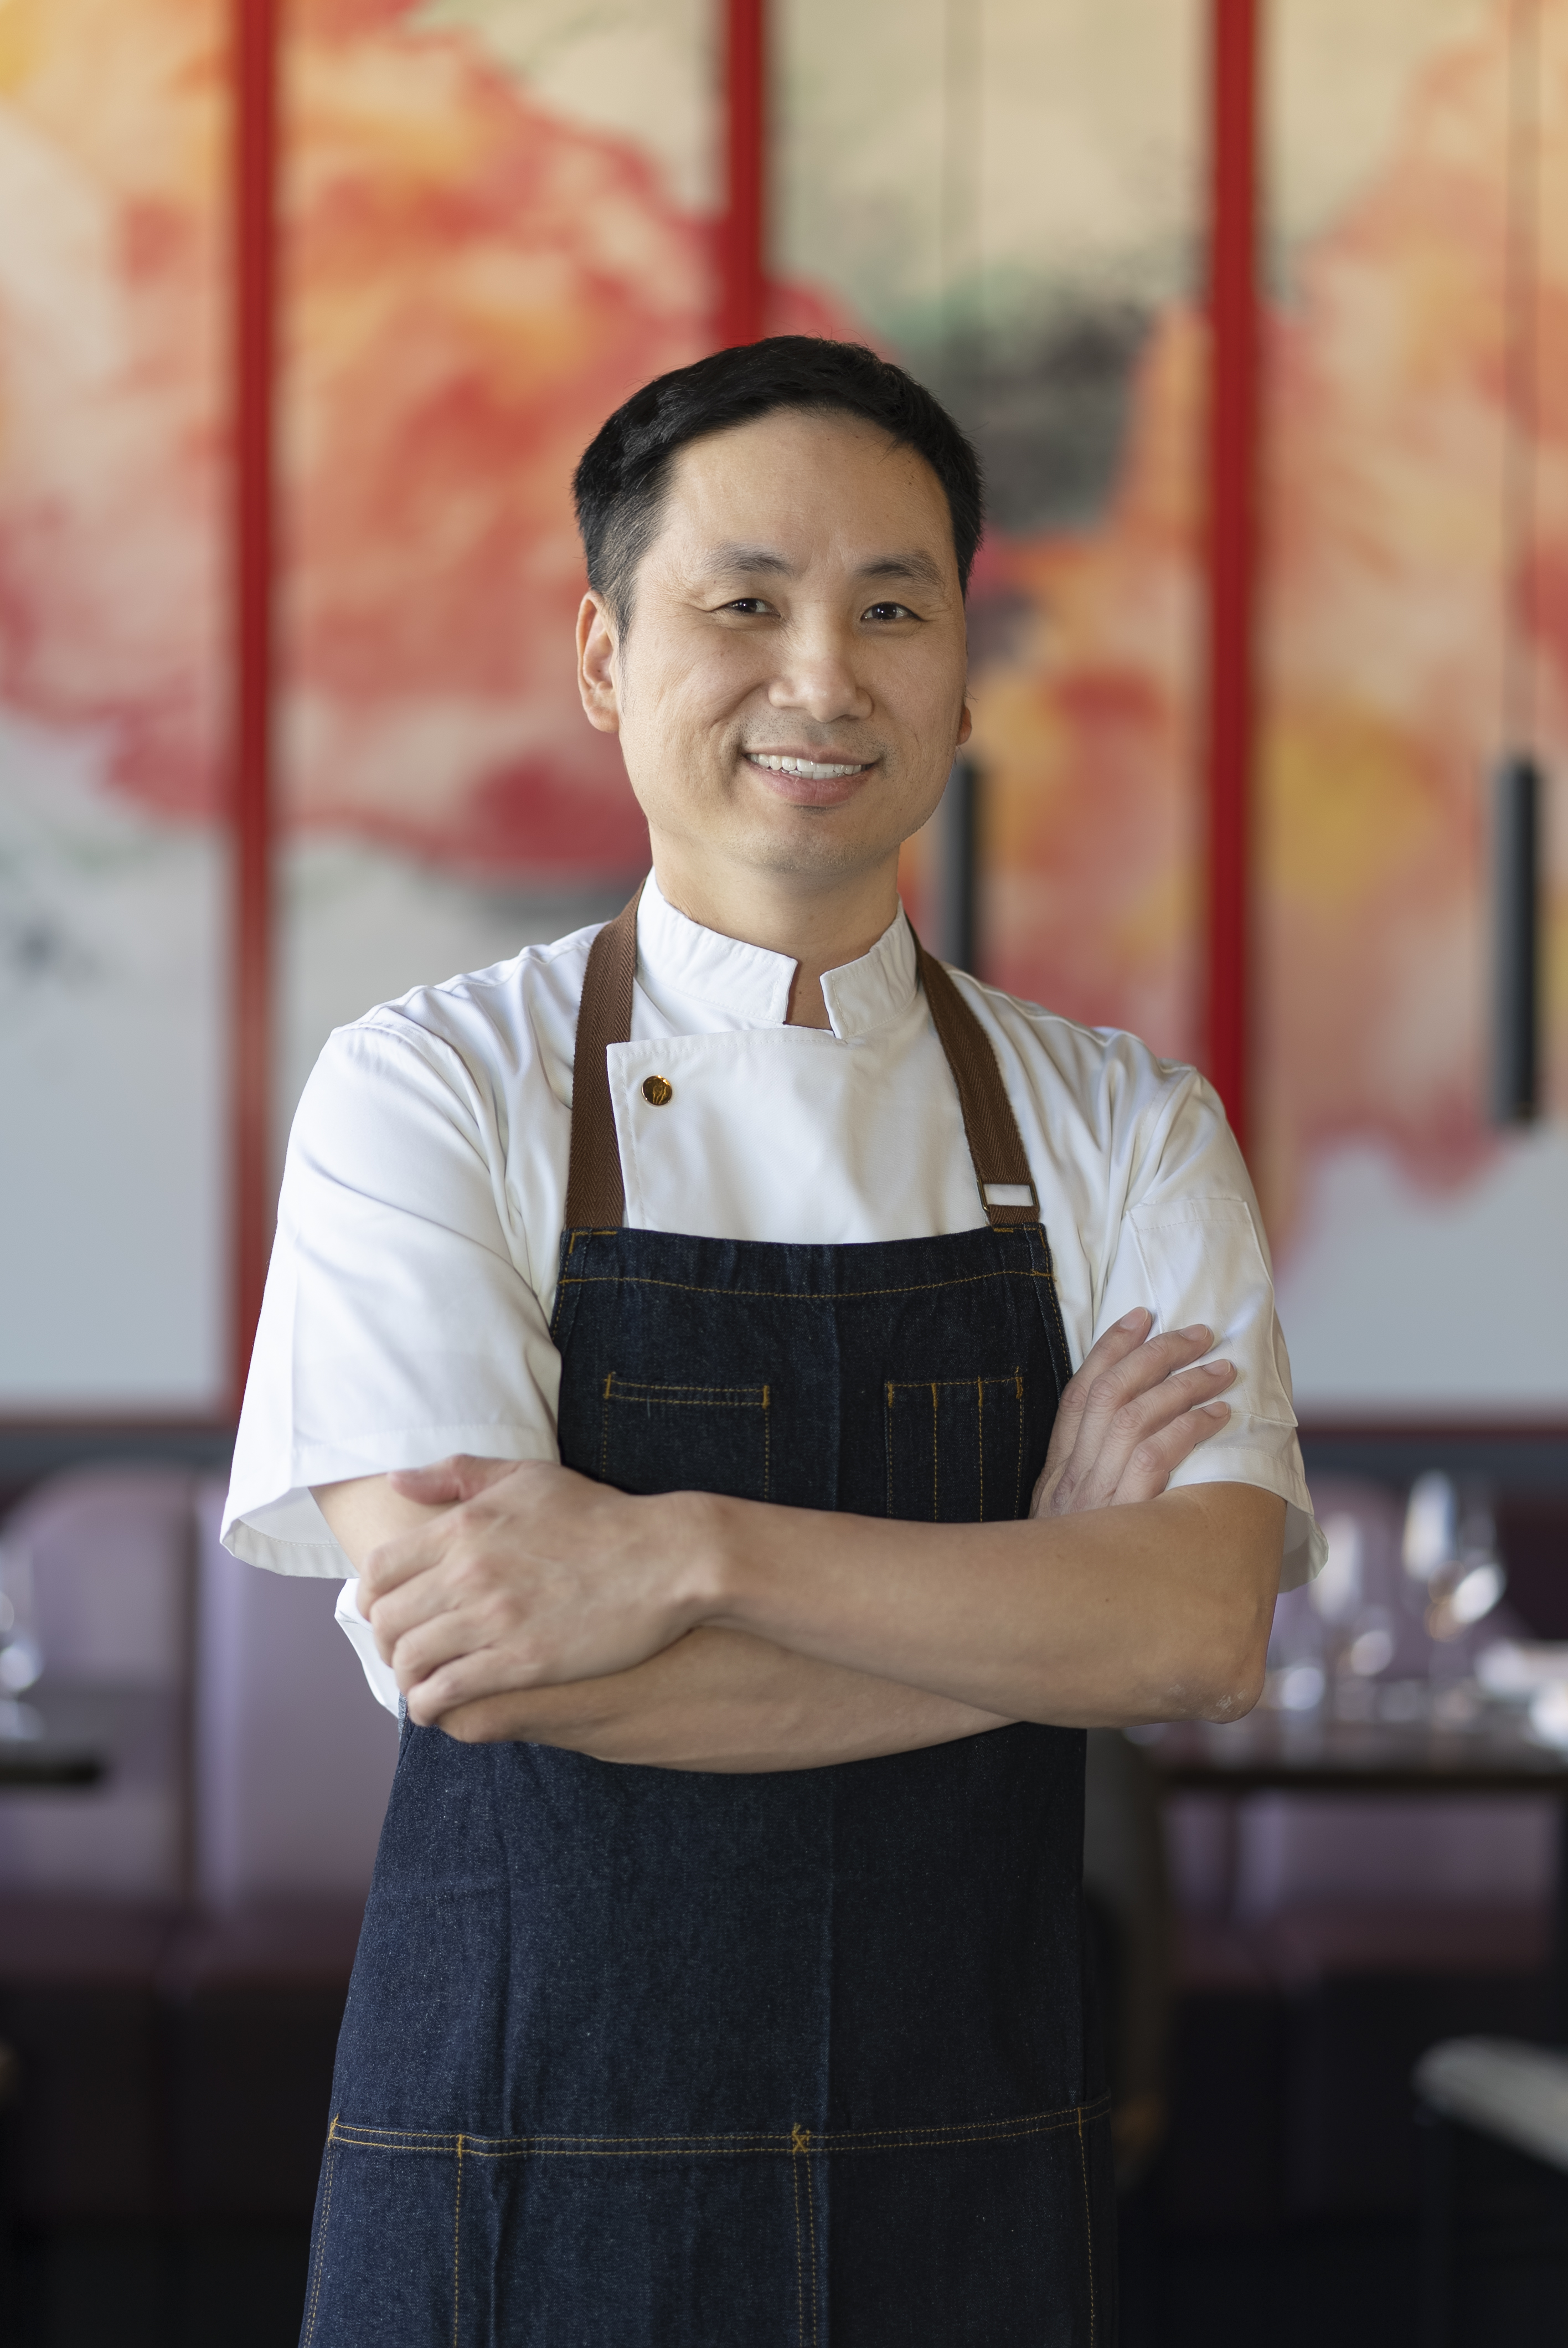 Malaysia's Award Winning Chef Brings Creative Cantonese Cuisines To The World